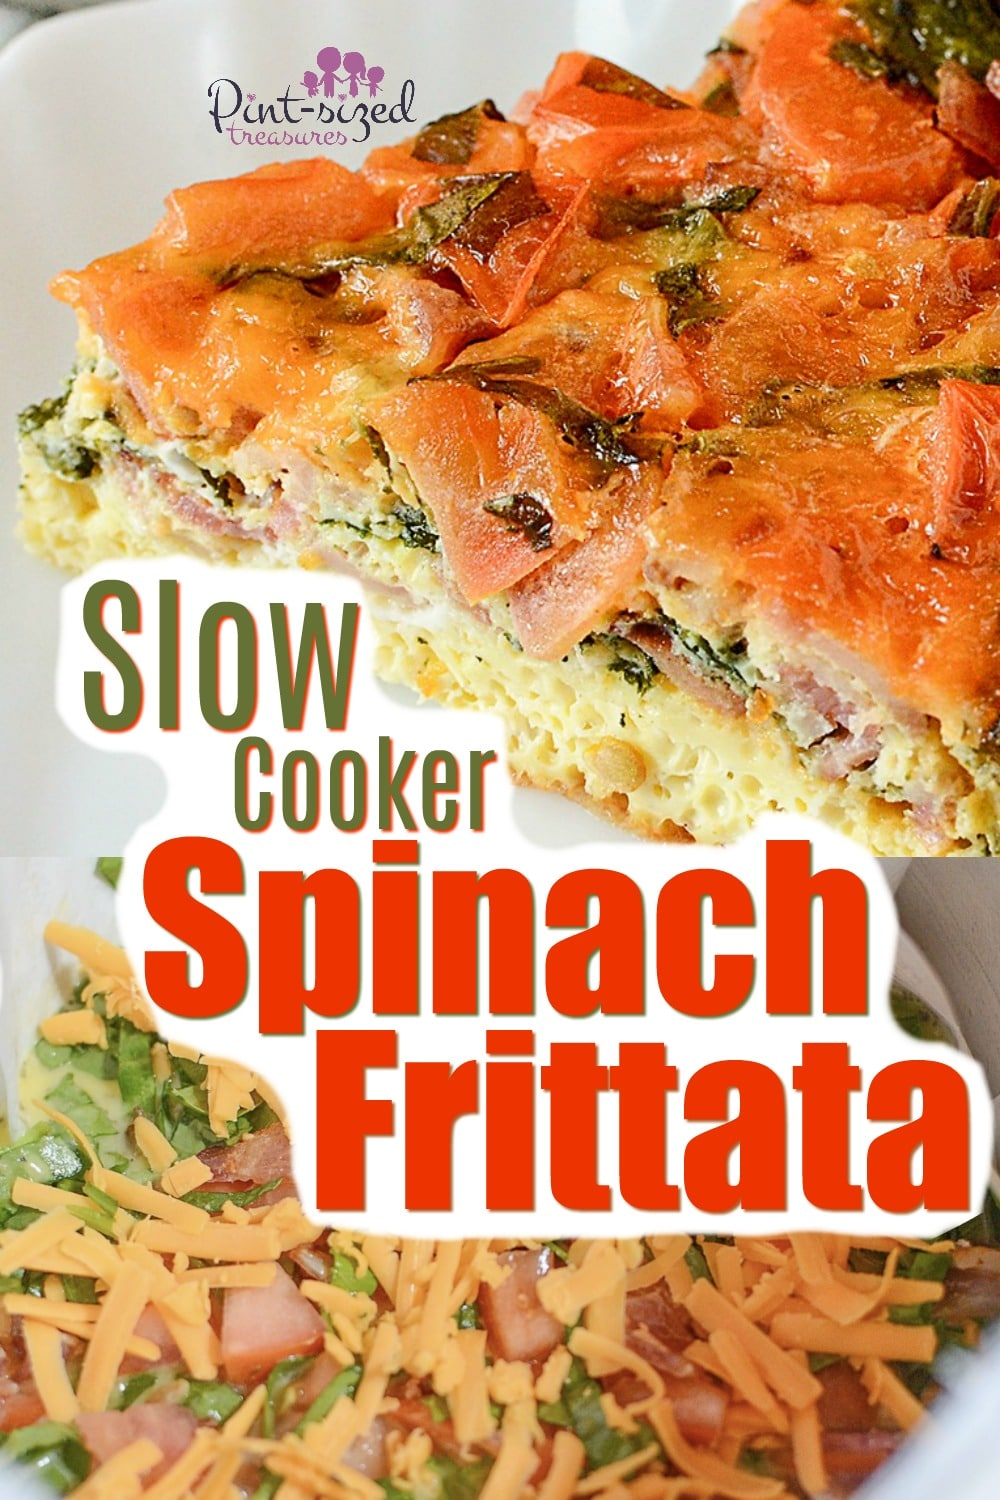 Slow cooker spinach frittata recipe is a simple, crustless quiche that's packed with flavors, seasonings and made in the slow cooker! You'll love this spinach filled frittata!